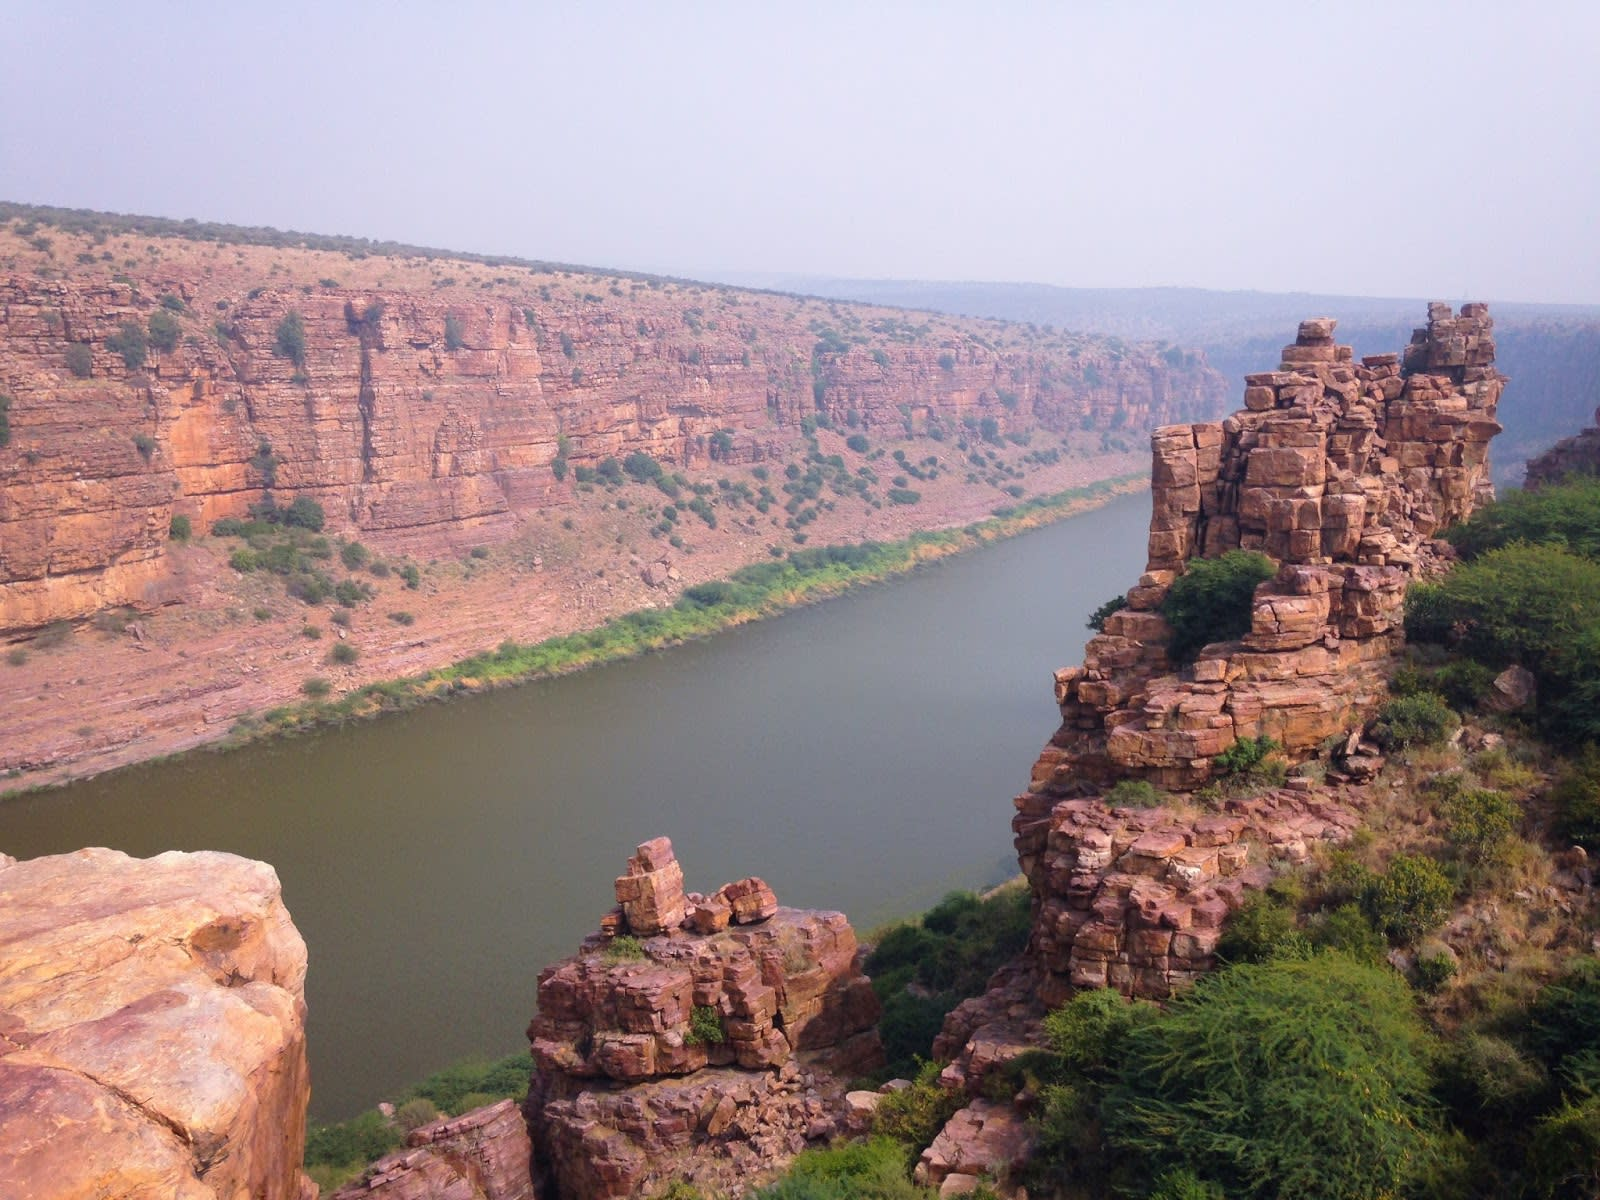 Hire a car and driver in Gandikota